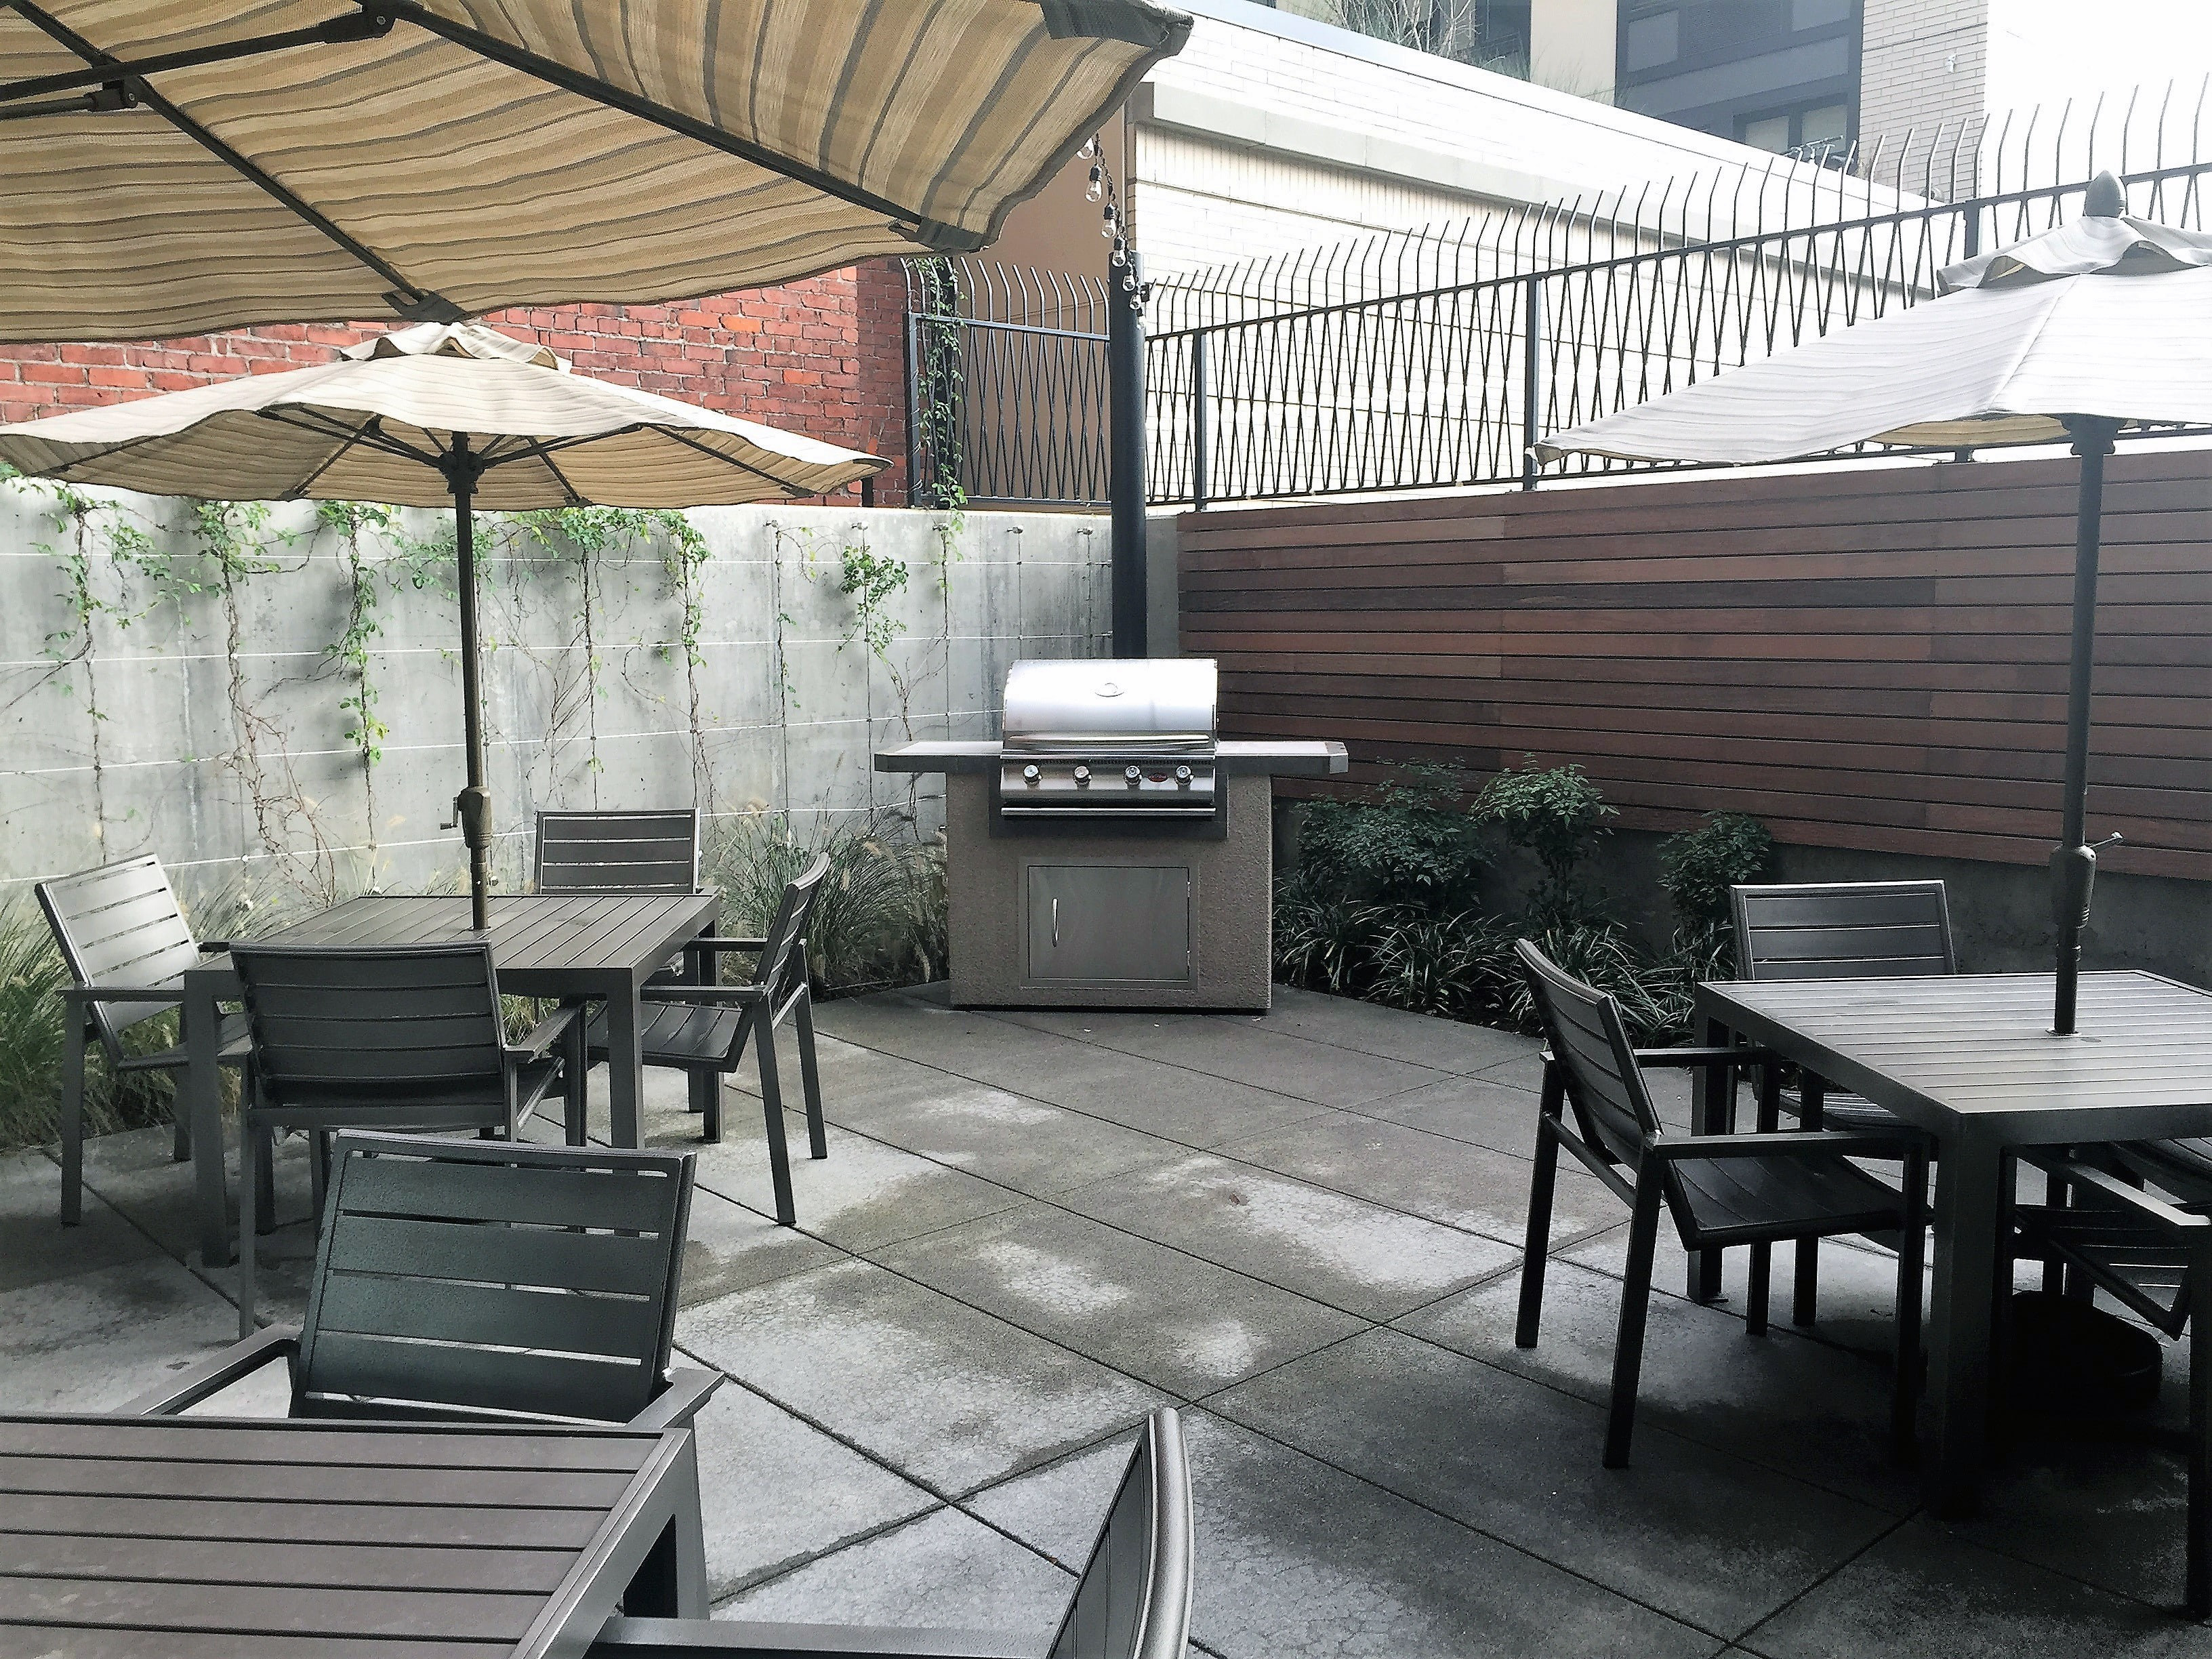 Community Outdoor Terrace with BBQ Grill Station